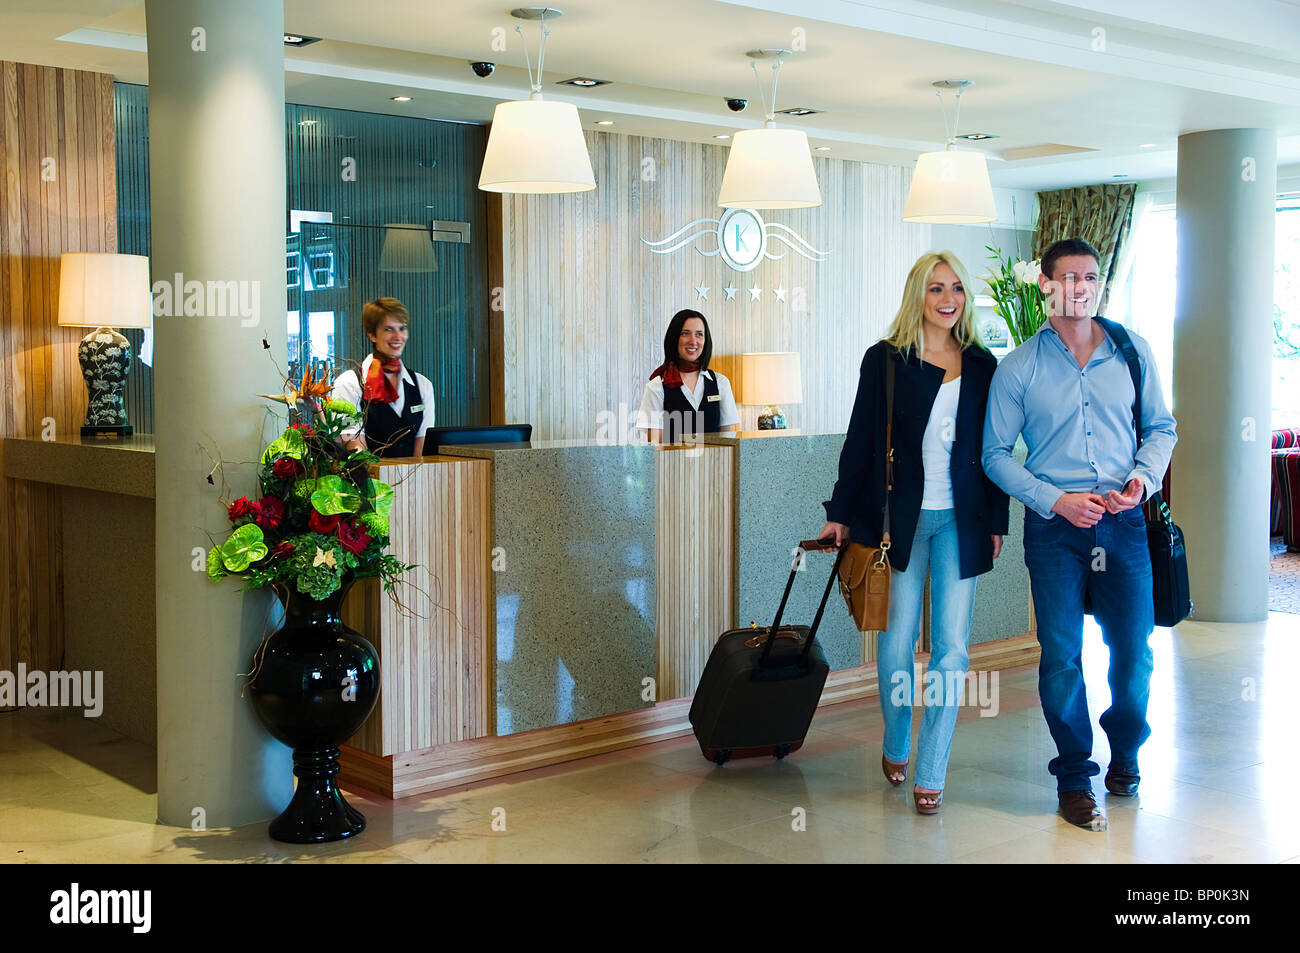 Northern Ireland, Fermanagh, Enniskillen. Couple in the reception at the Killyhevlin Hotel. - Stock Image